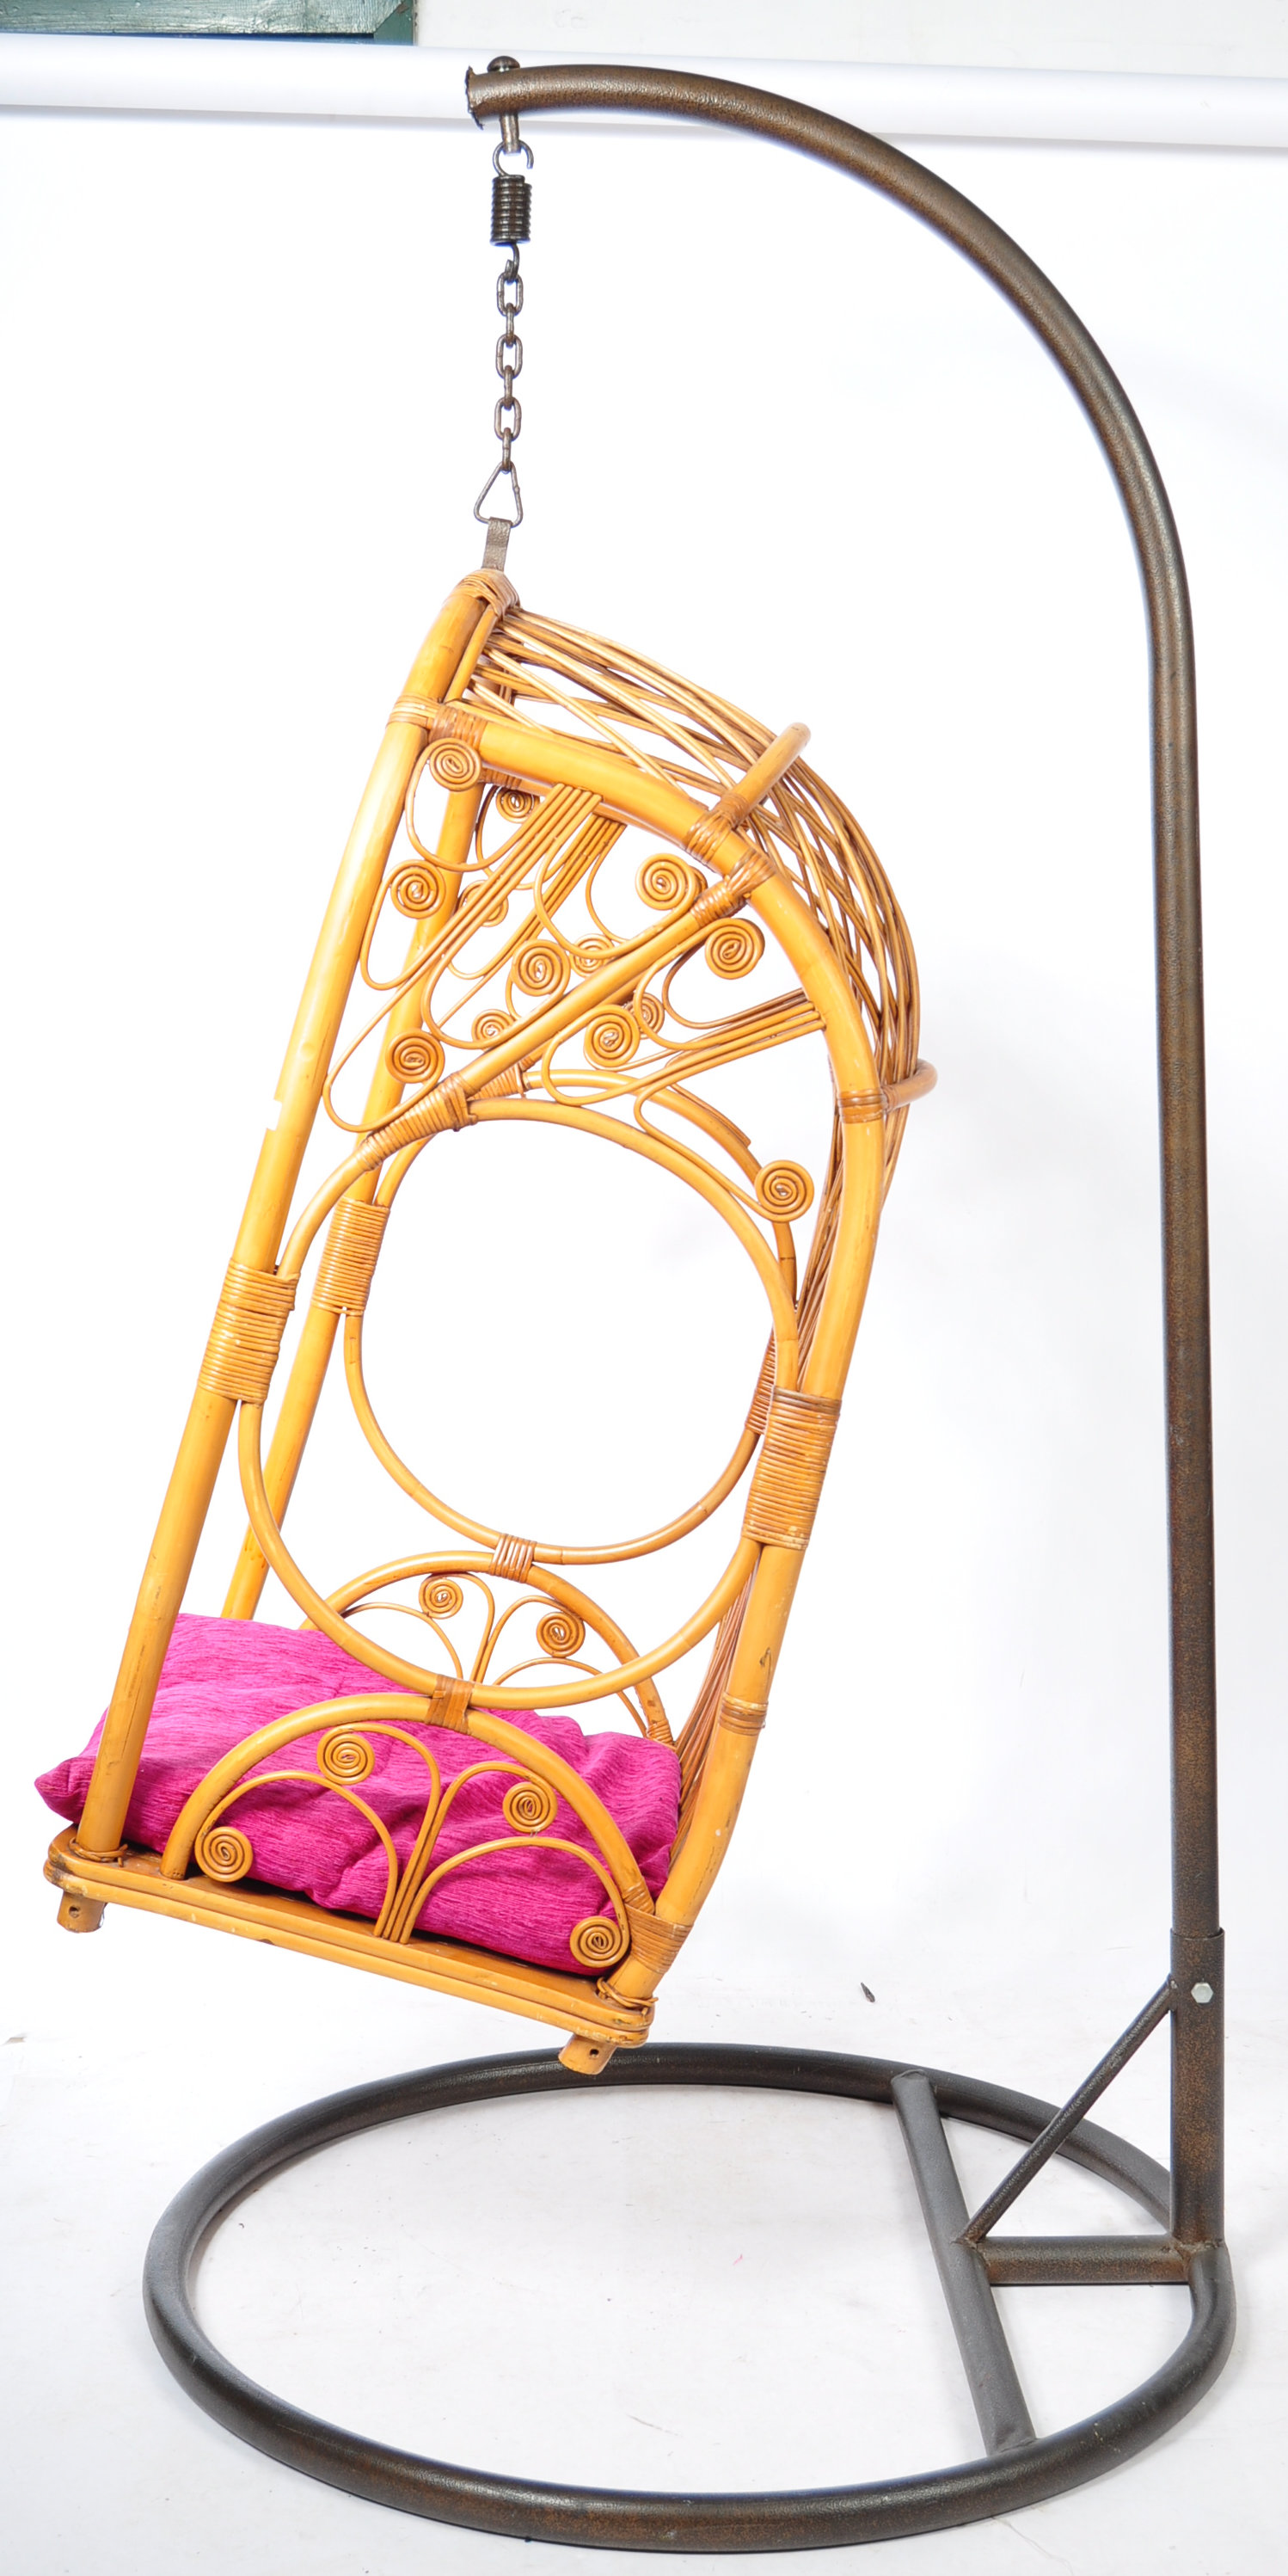 HANGING BASKET EGG SHAPED PENDULUM CHAIR OF WICKER CONSTRUCTION - Image 2 of 8